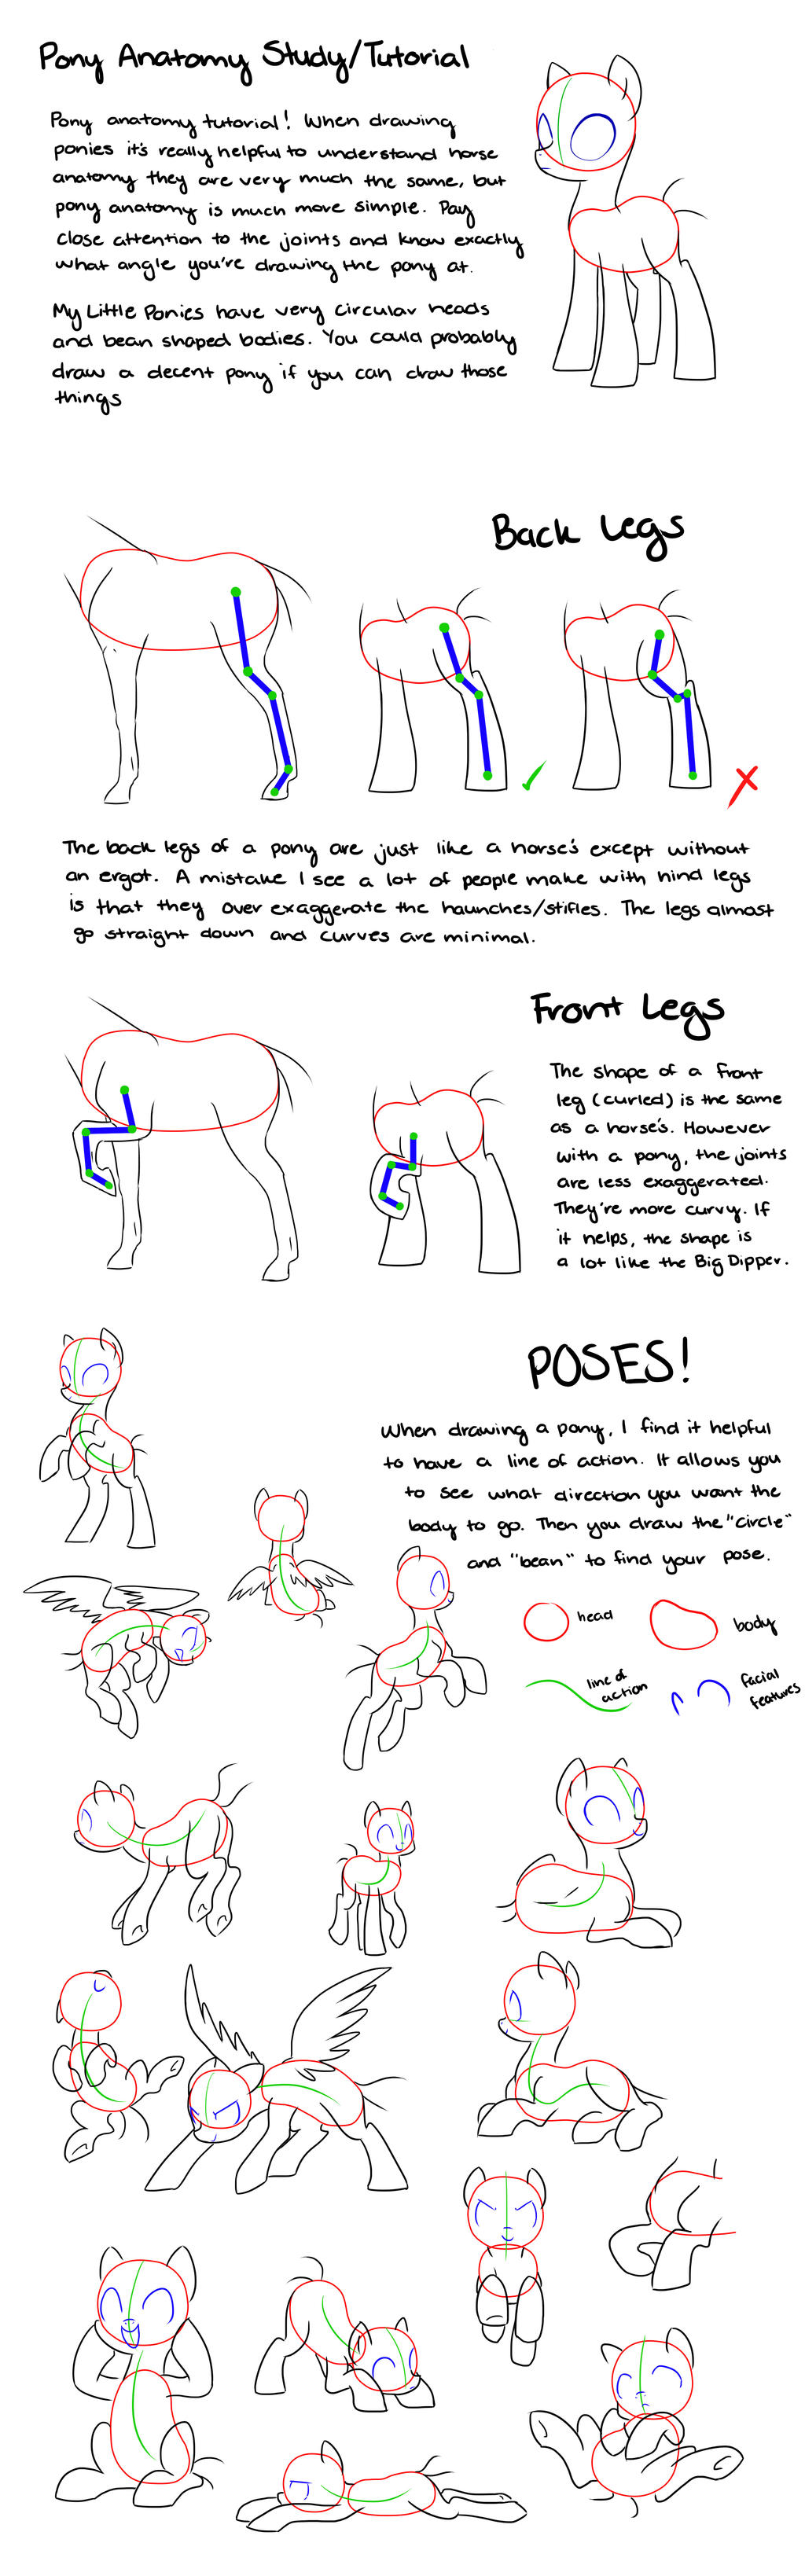 Pony Anatomy Tips/Study/Tutorial by kianamai on DeviantArt